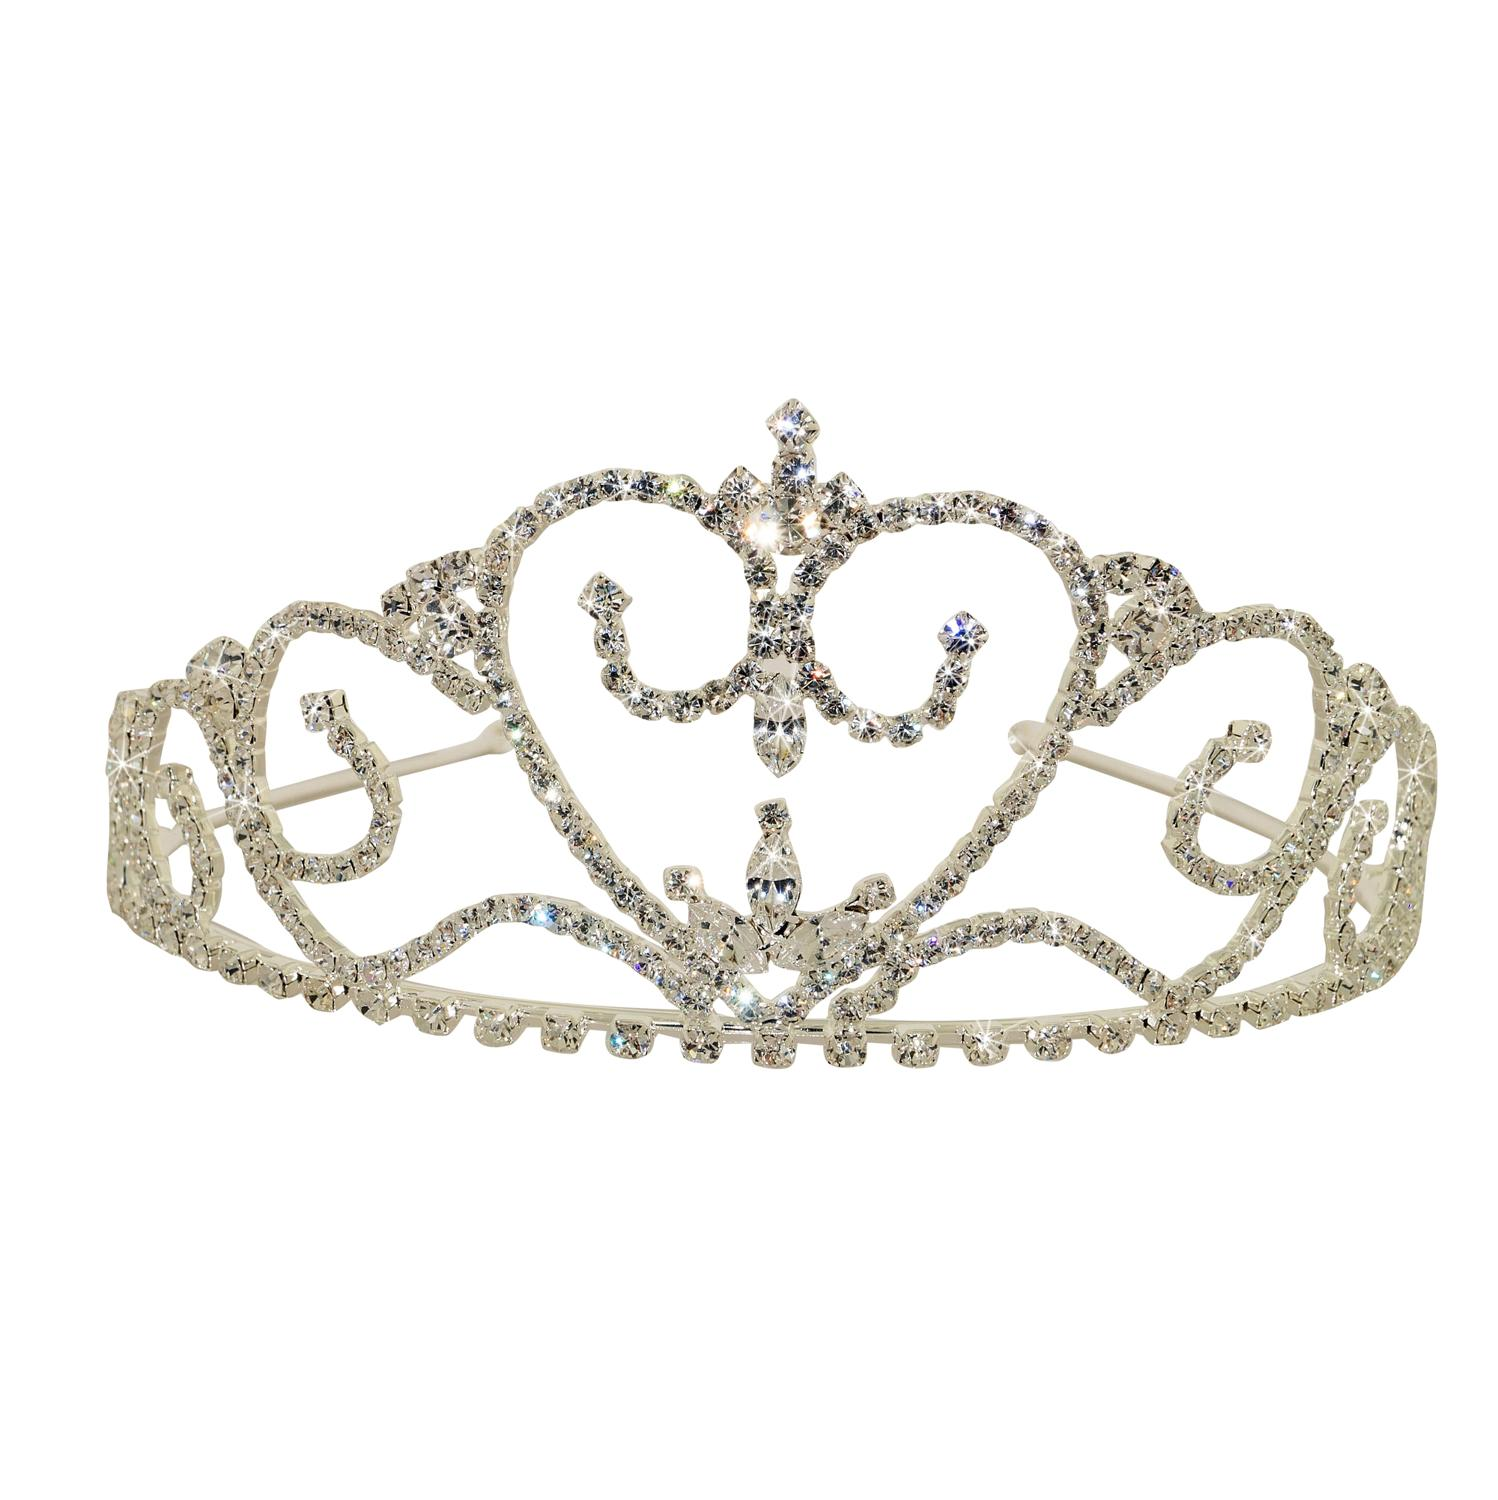 Graceful Diamante Tiara